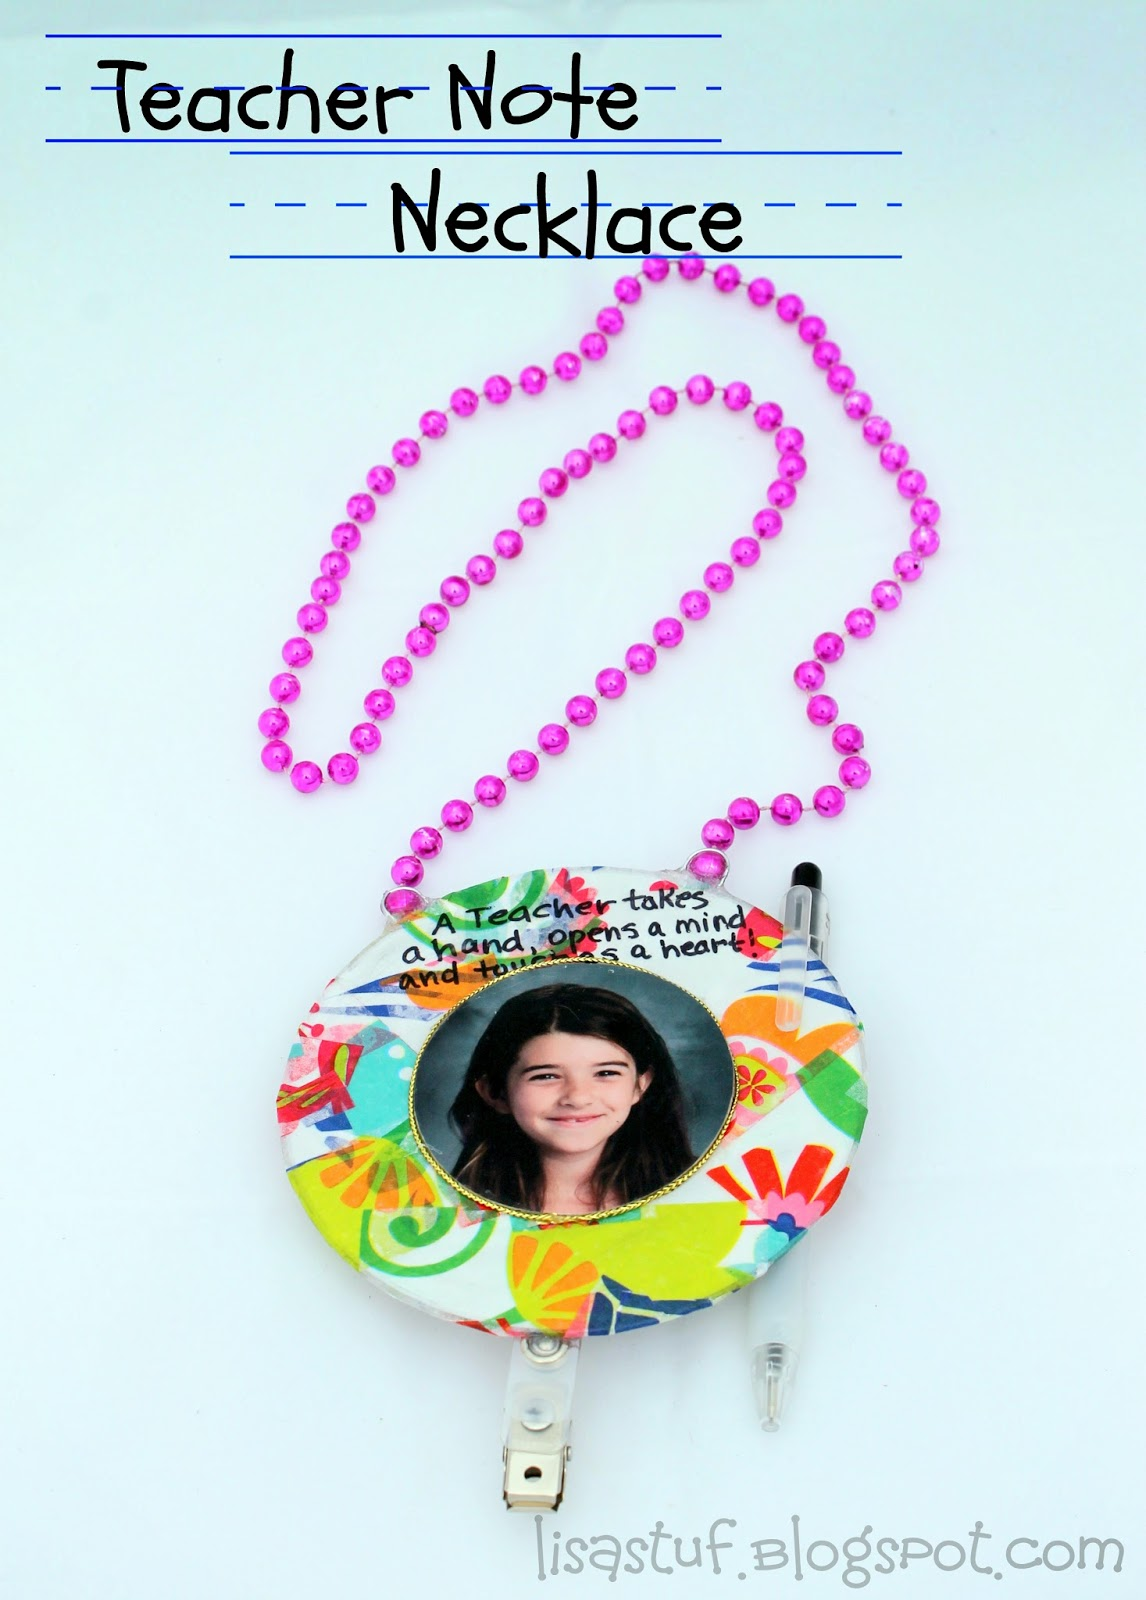 Teacher Note Necklace made from Upcycled CD-ROM